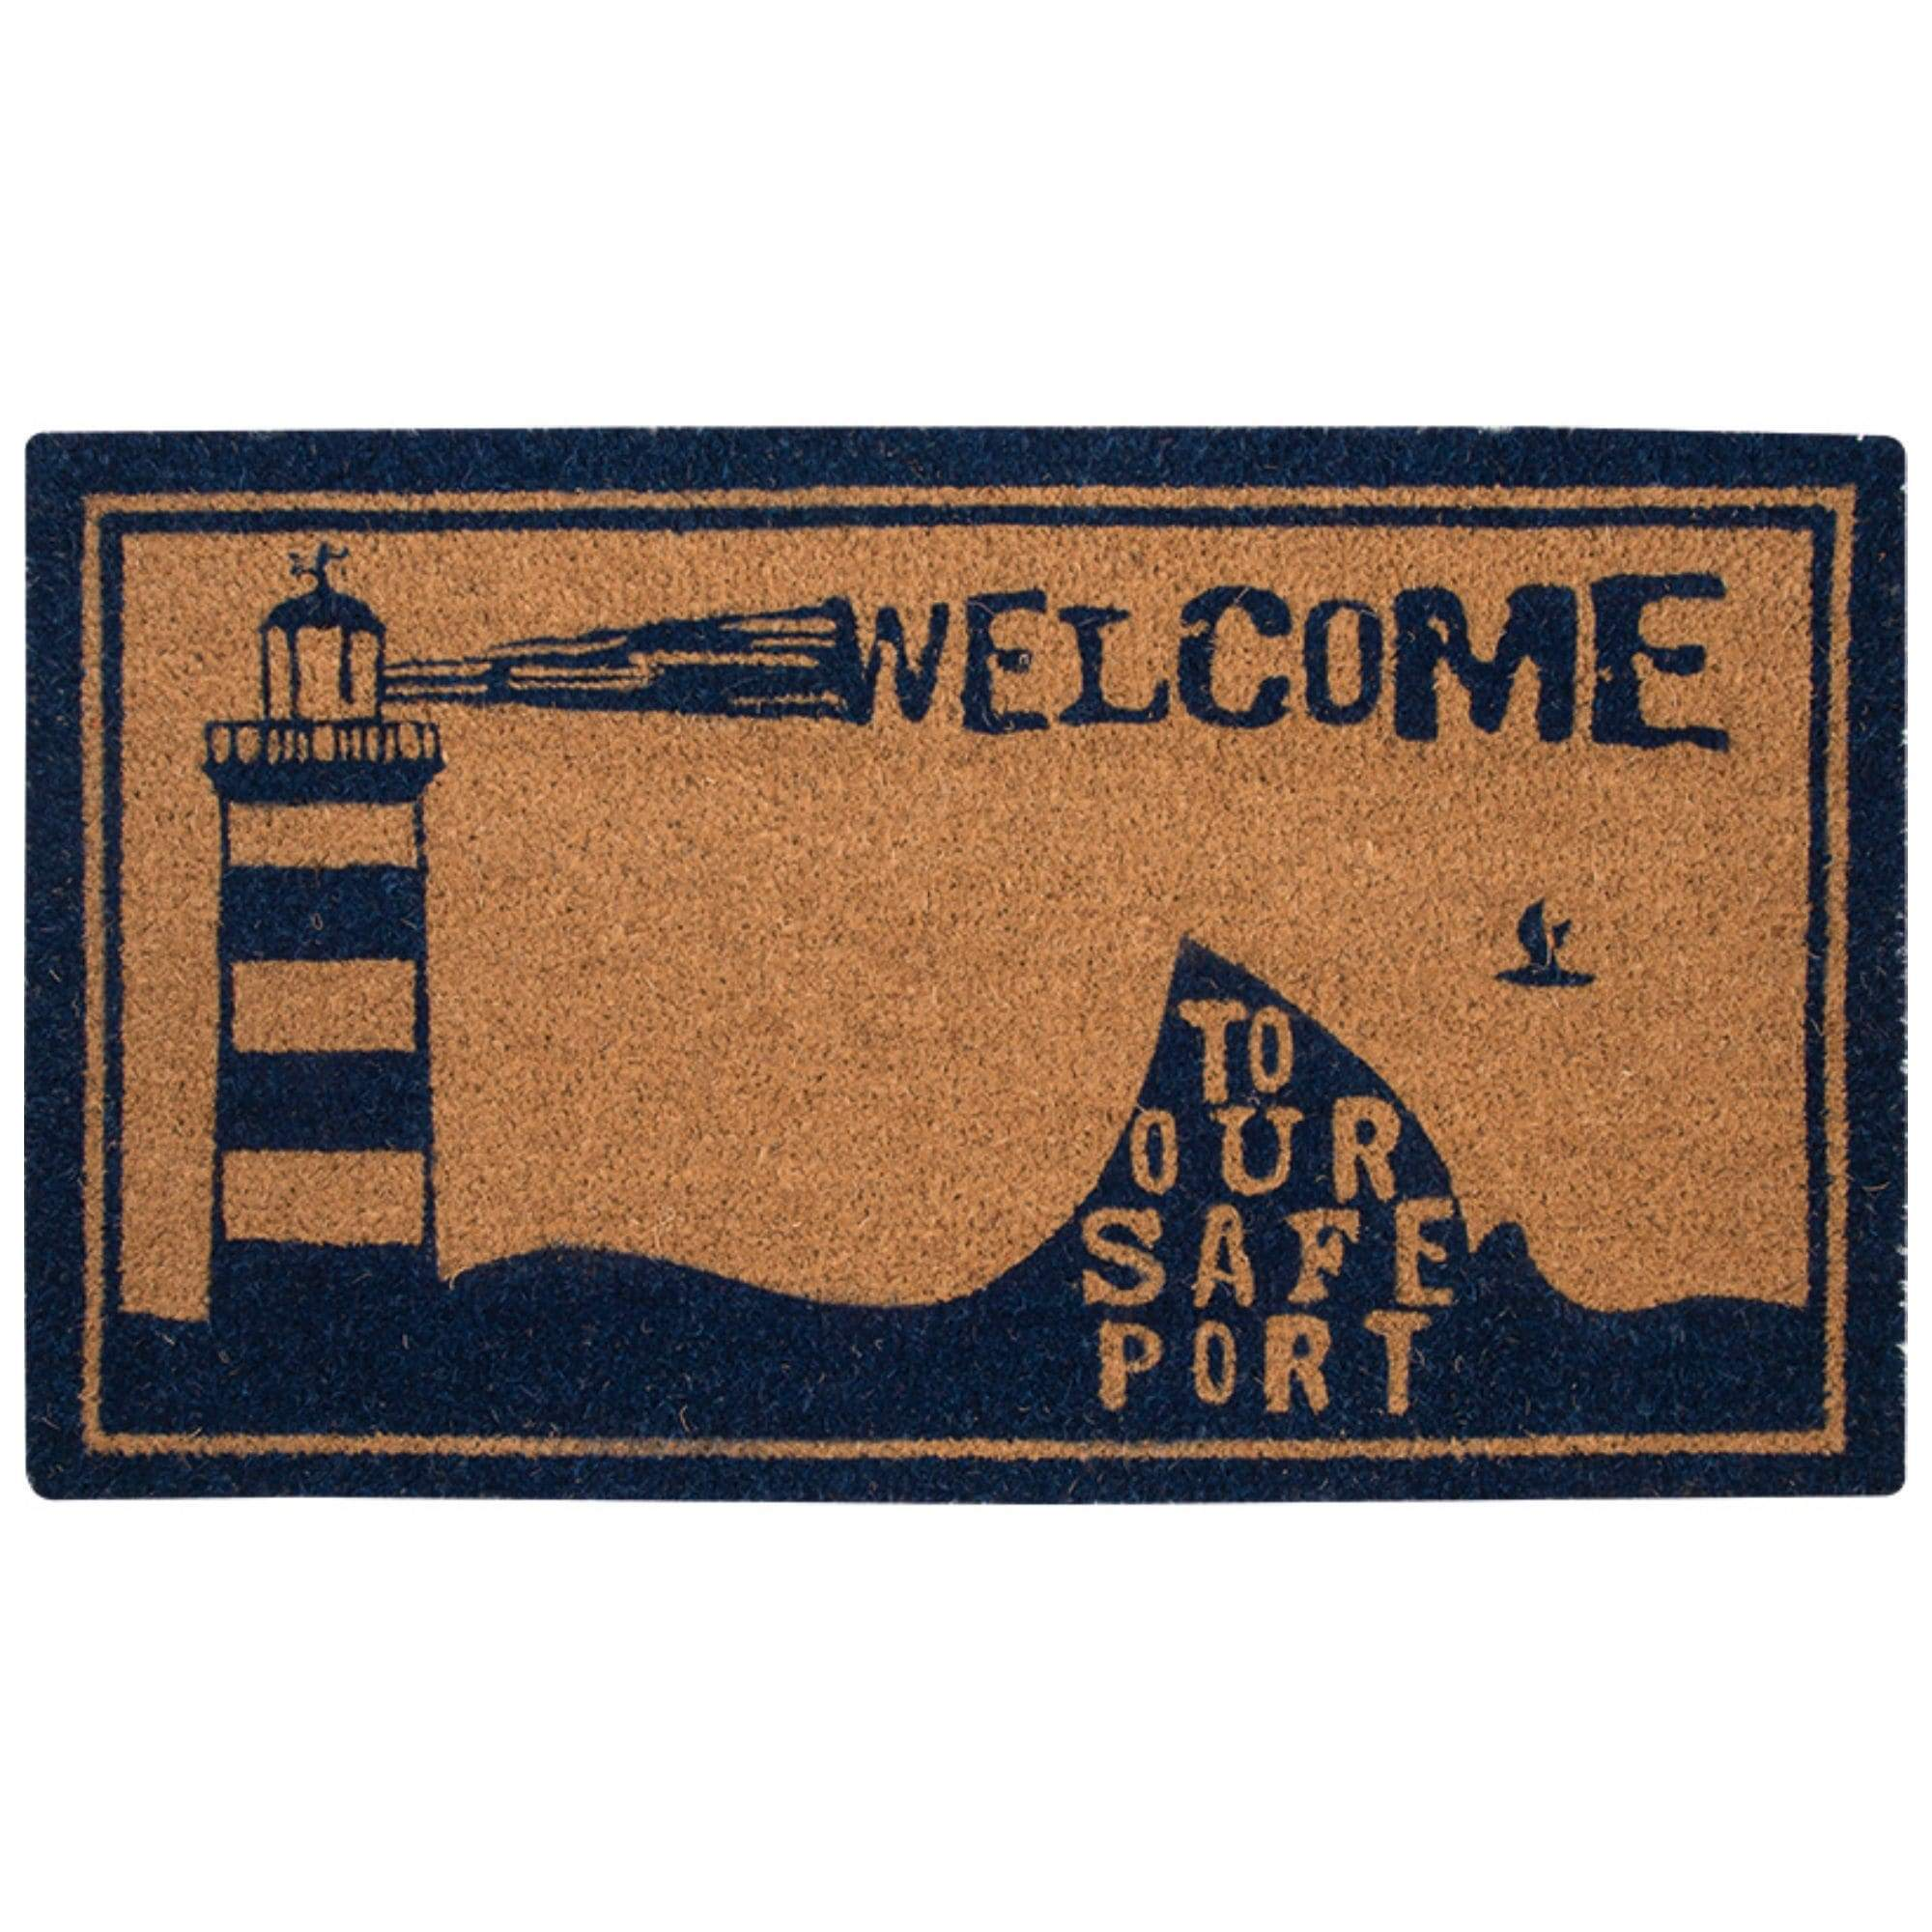 Lighthouse Doormat SALE 40% (£22.50)